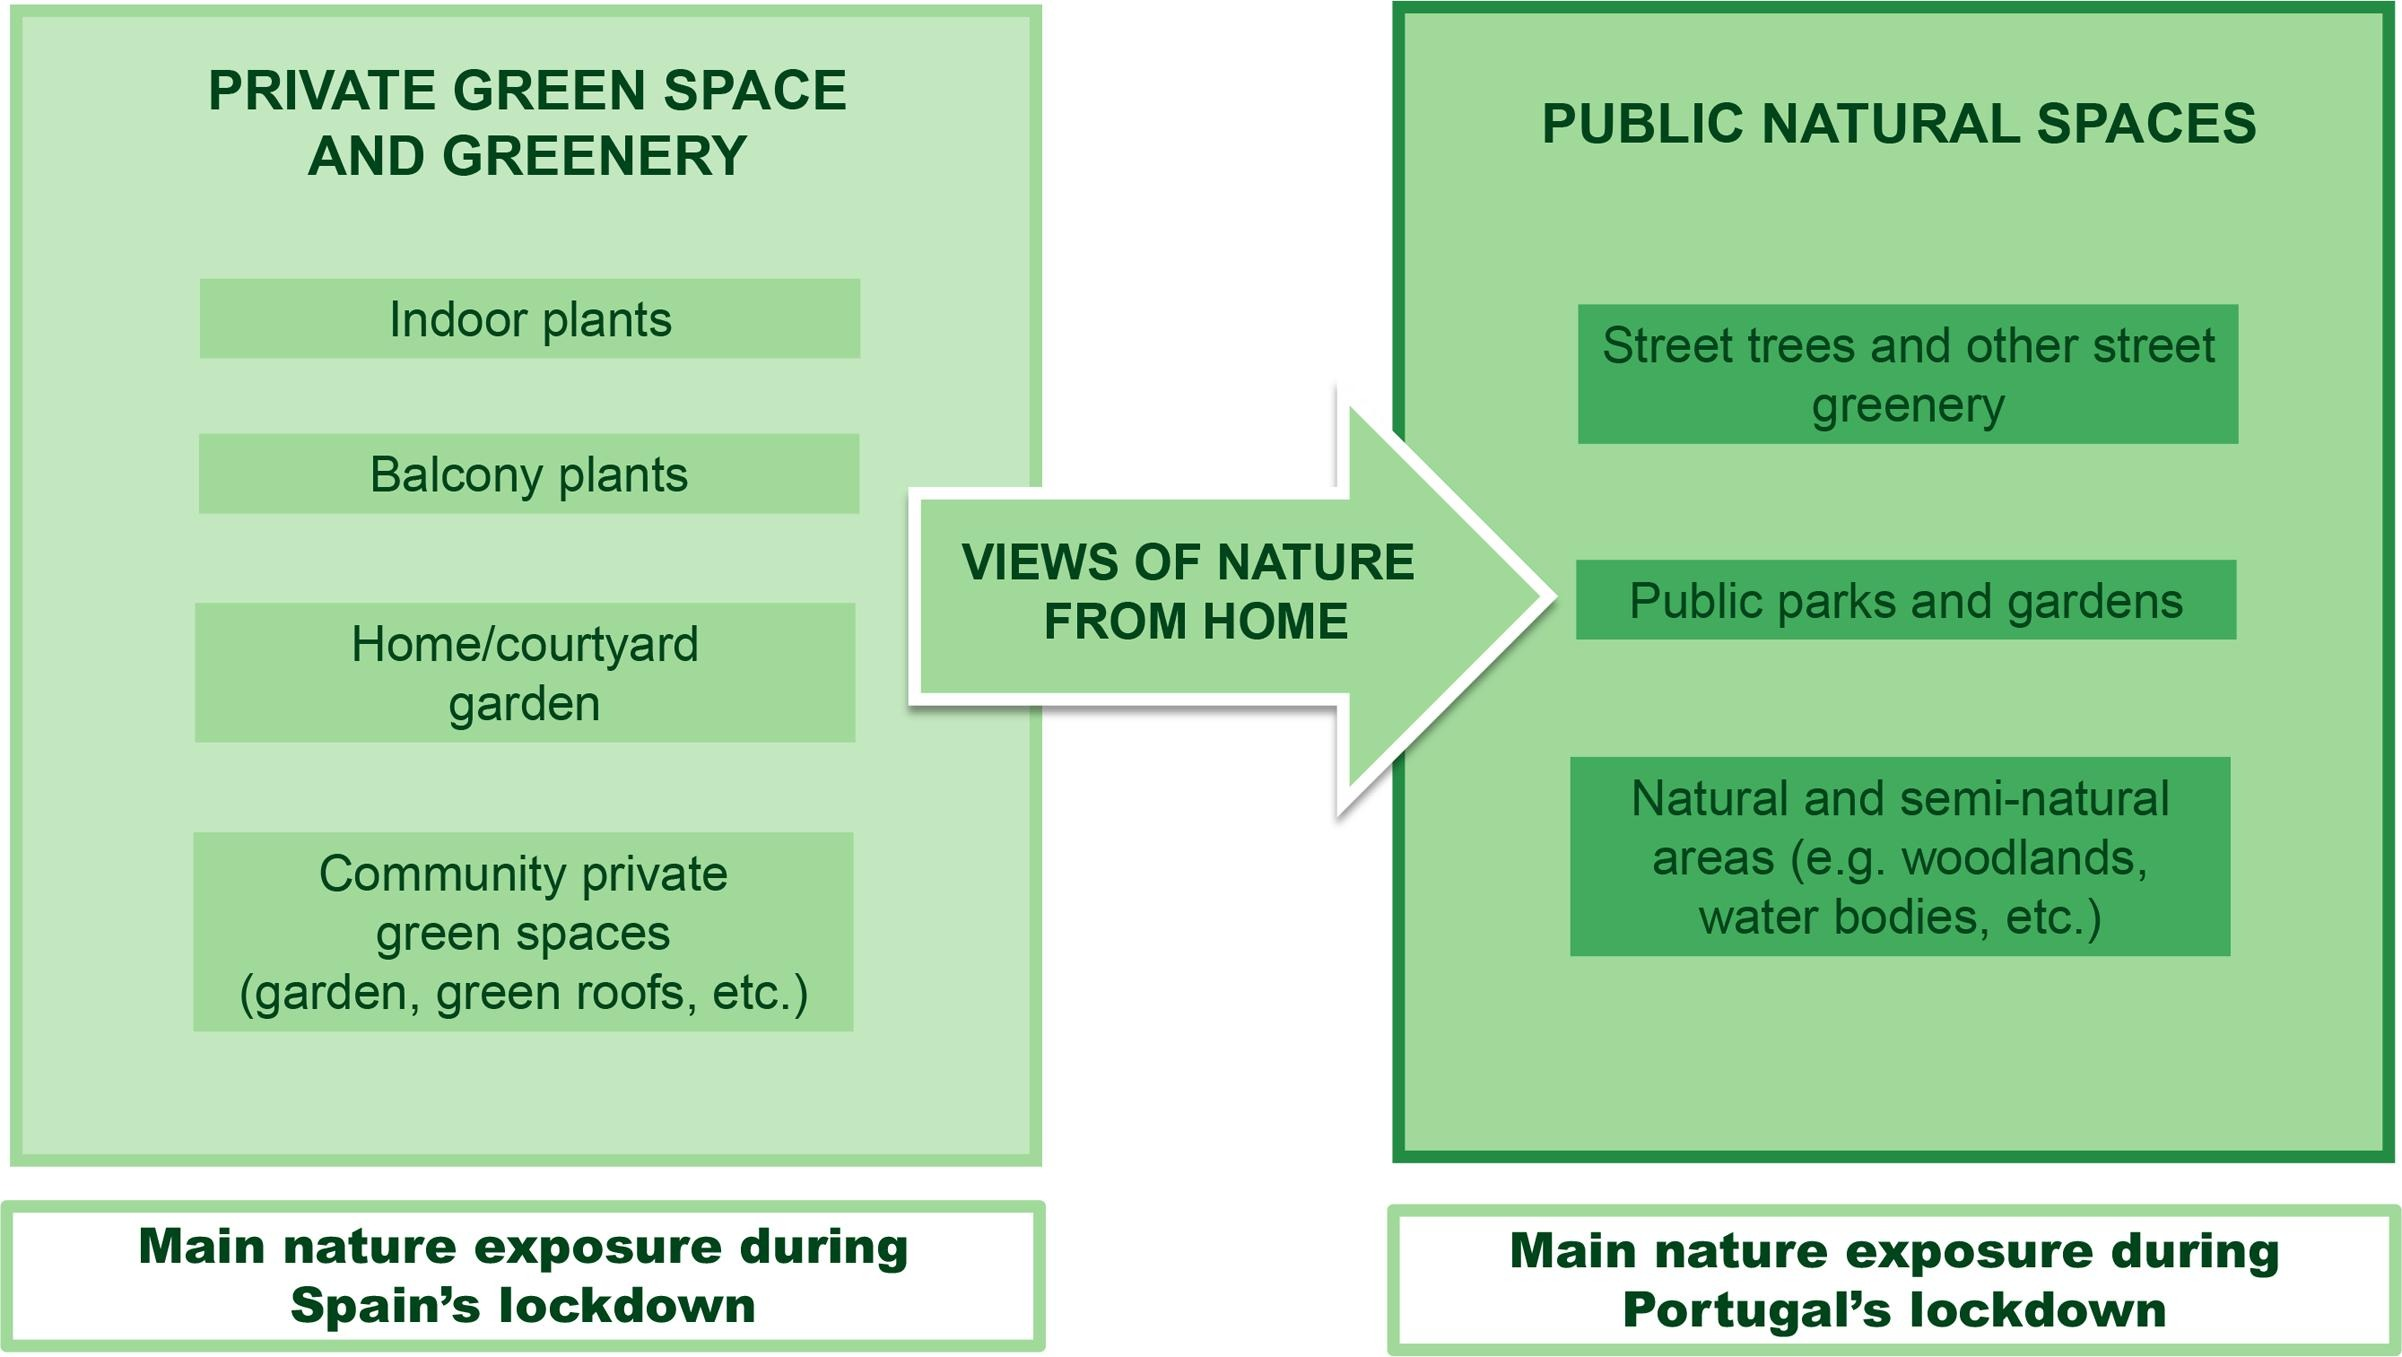 Exposure to Nature During Covid-19 Lockdown Was Beneficial for Mental Health